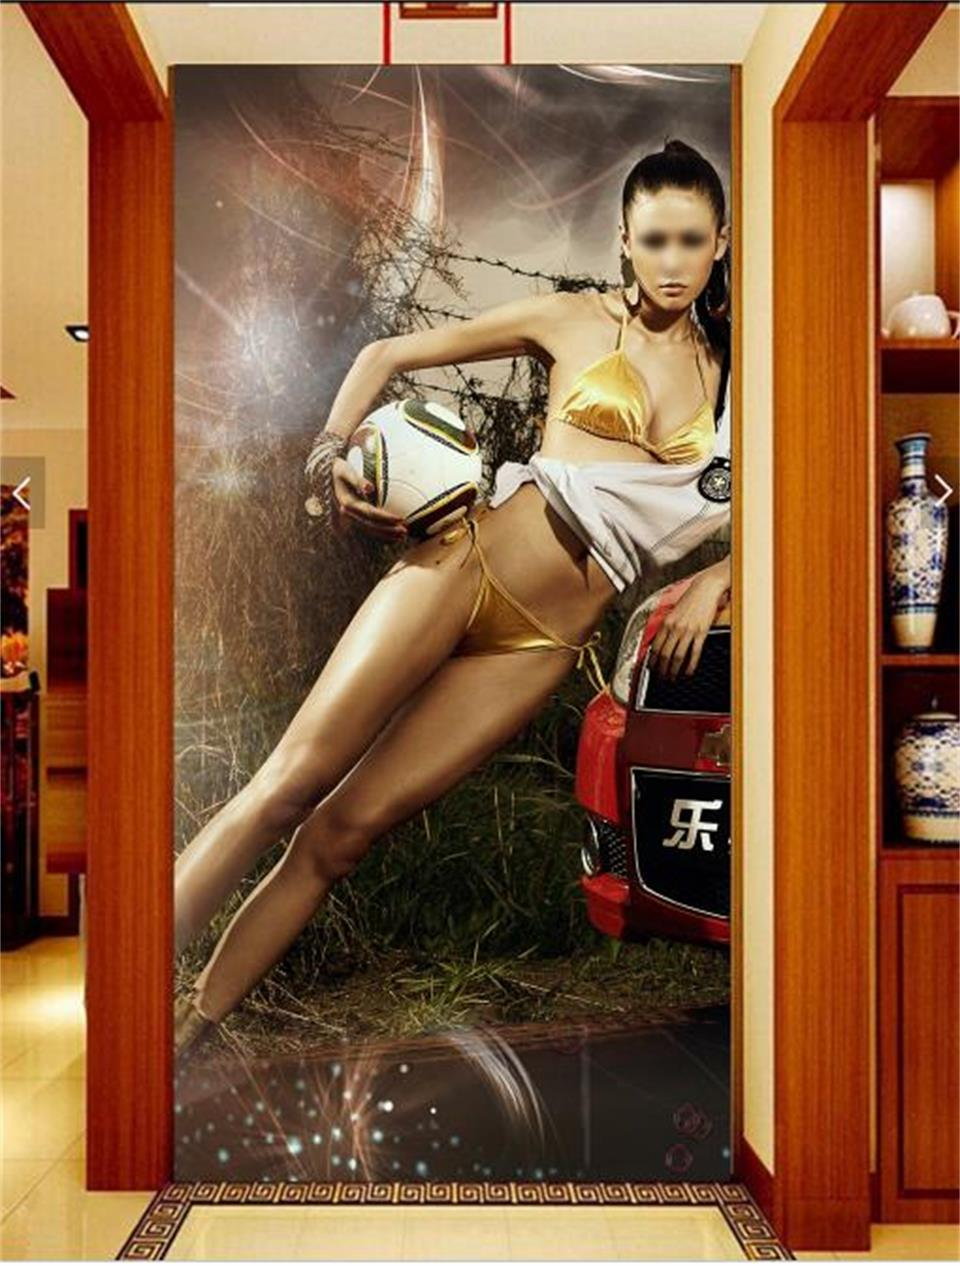 3d photo wallpaper custom mural porch living room Chinese beauty football baby 3d photo background wall non-woven wall sticker 3d room wallpaper custom mural non woven wall sticker 3 d scenery suspension bridge porch paintings photo wallpaper for walls 3d